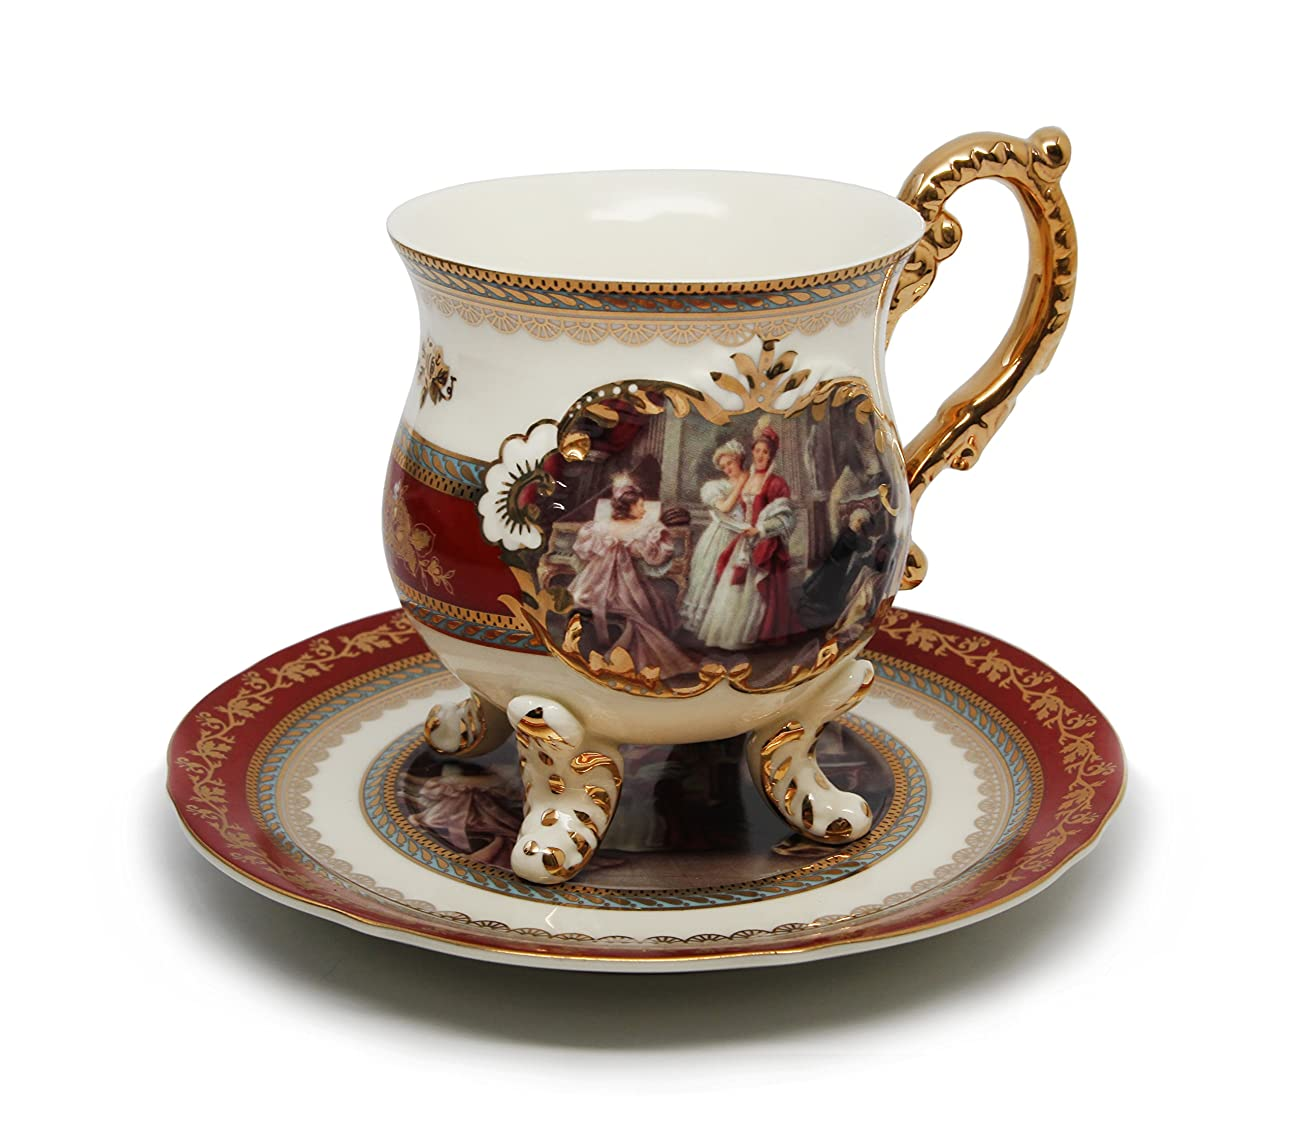 Royal Porcelain 15-Piece Antique RED Vintage Dining Tea Cup Set, Service for 6, Handmade & Hand-Painted, 24K Gold Bone China Tableware 2